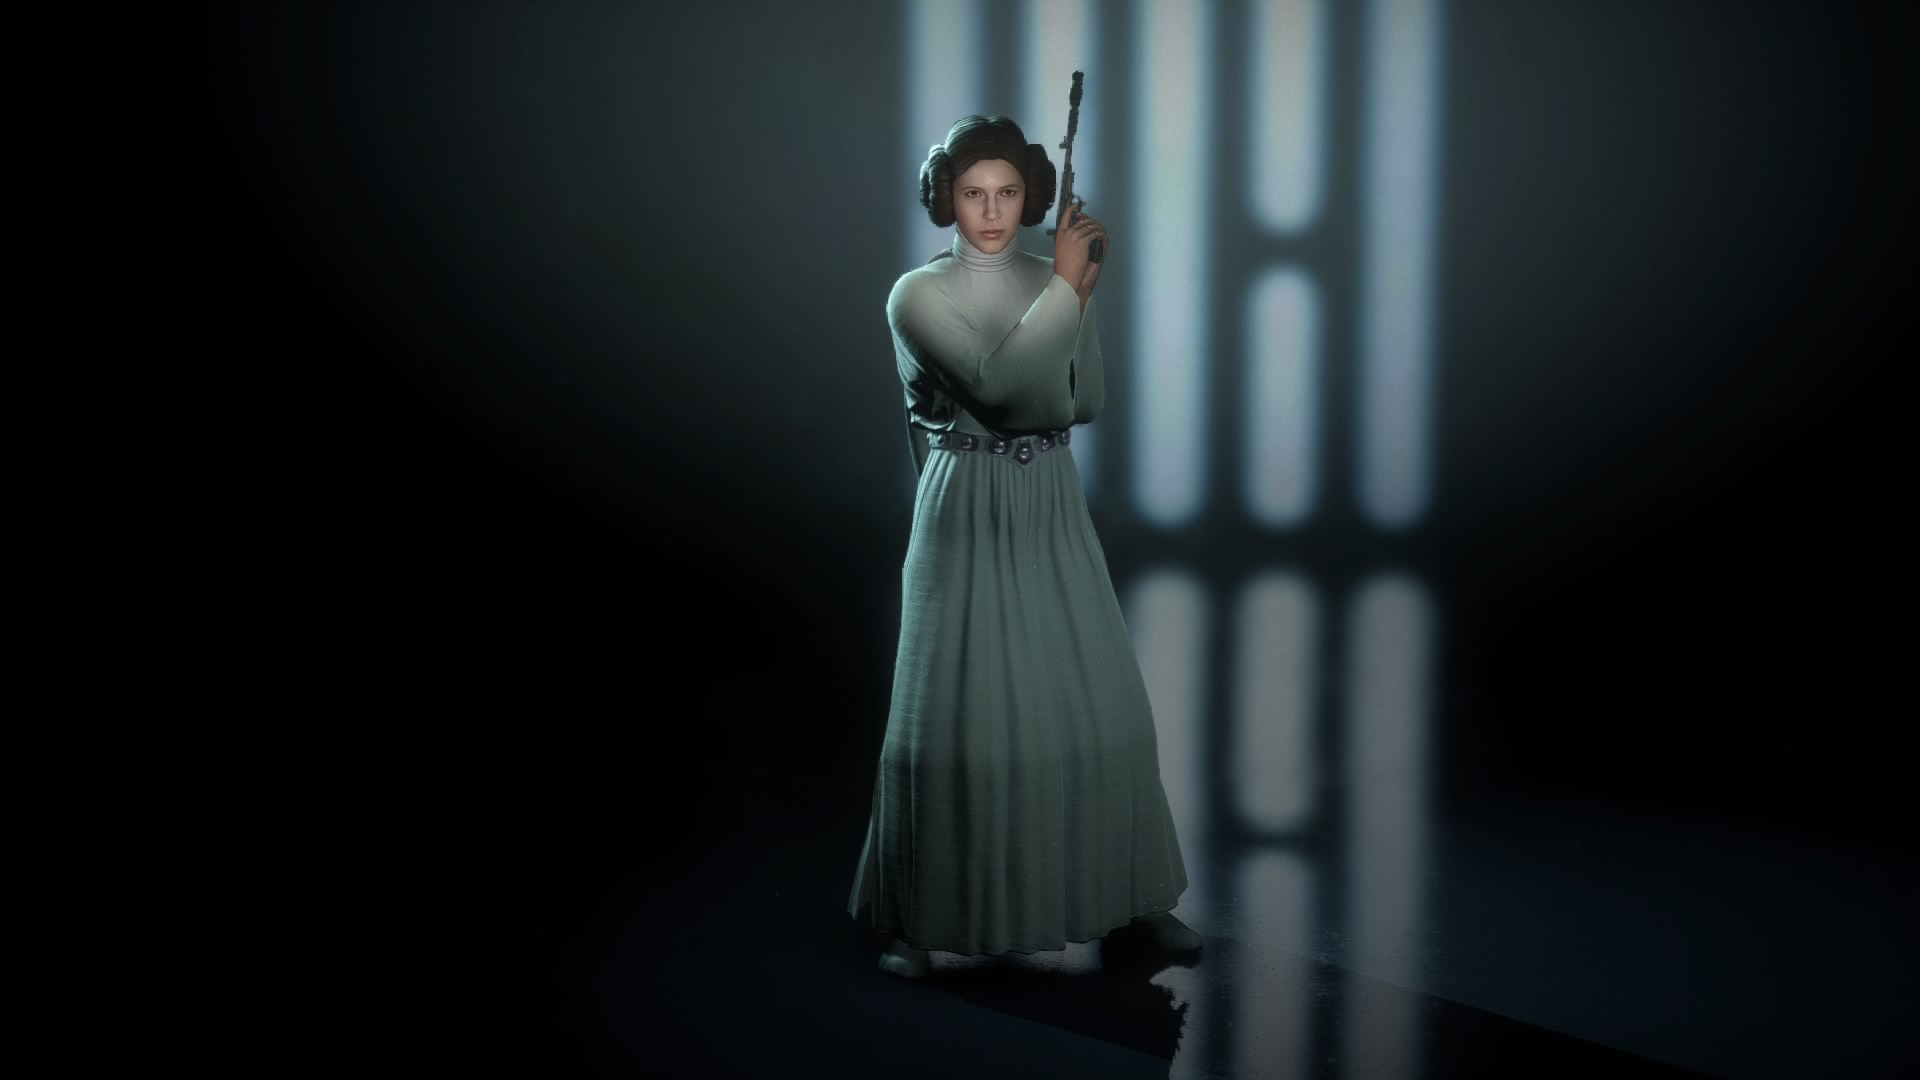 Battlefront 2 Leia Skin Requirements Announced